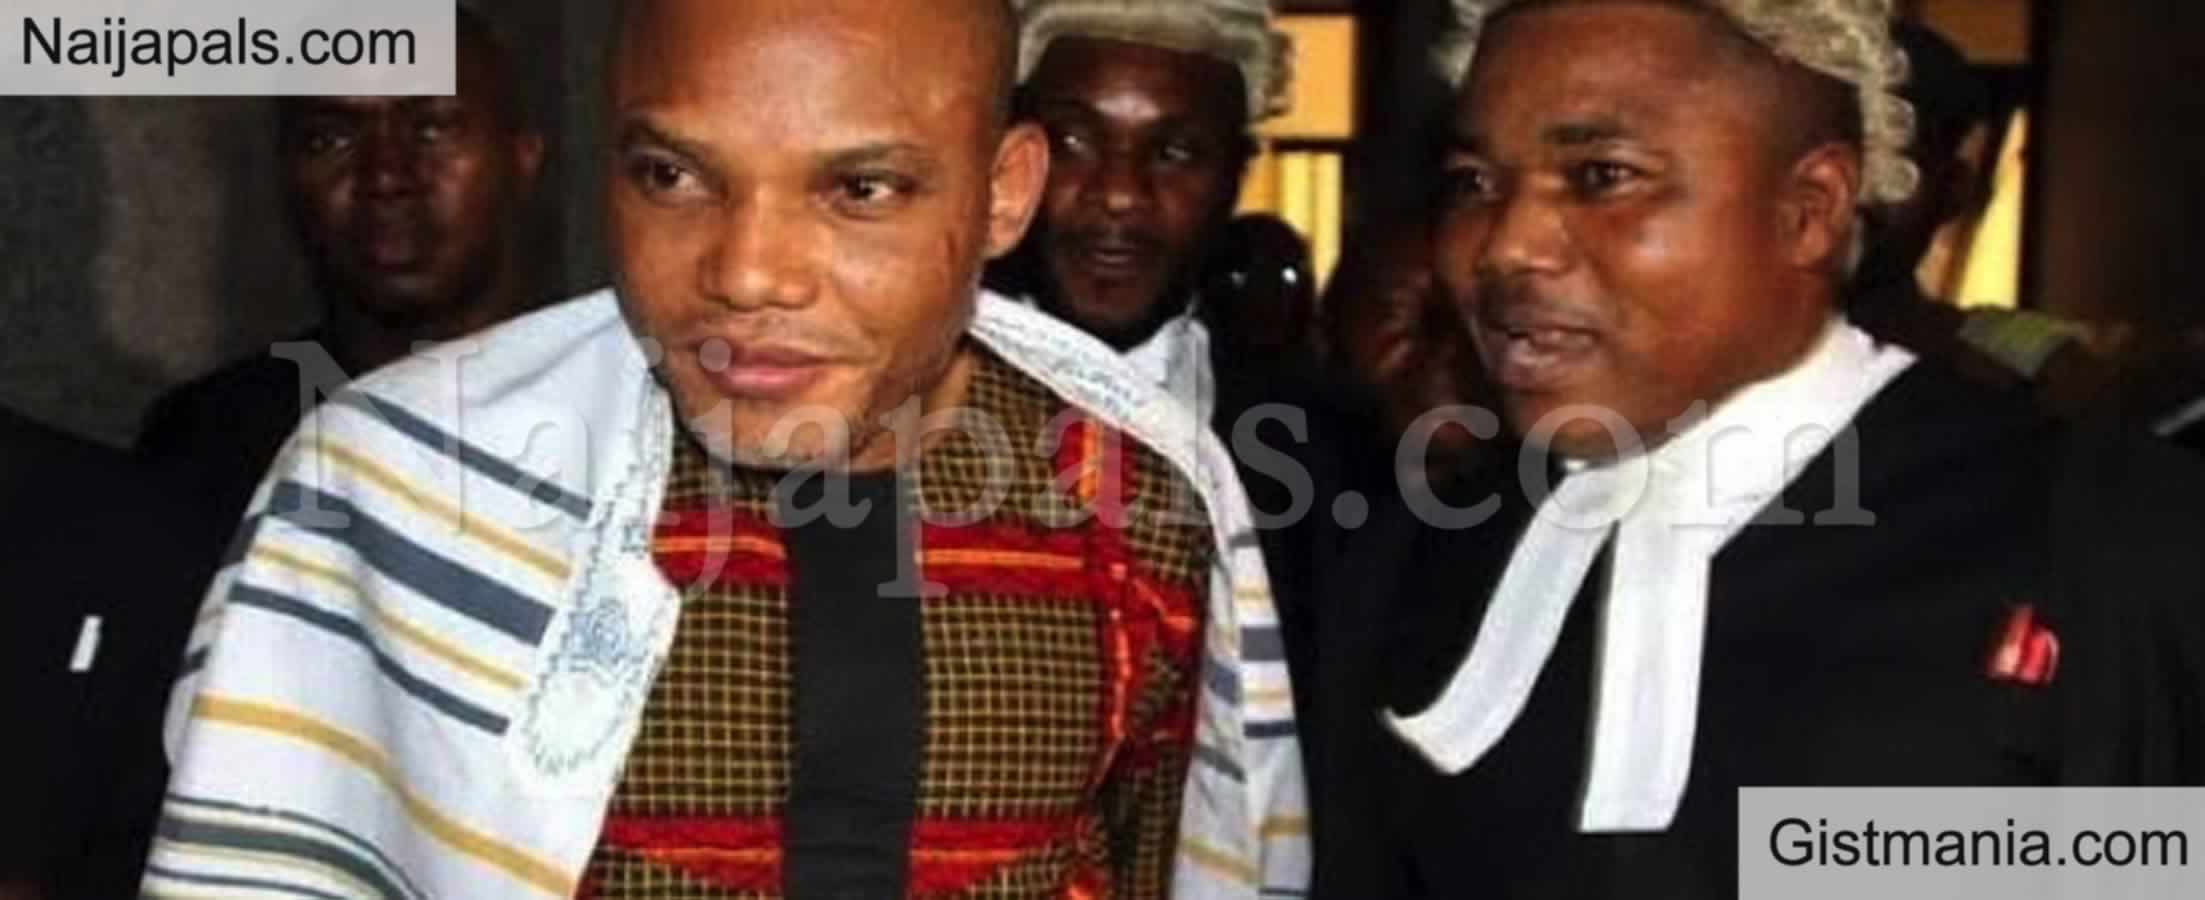 <img alt='.' class='lazyload' data-src='https://img.gistmania.com/emot/news.gif' /> <b>'He Requires Advanced Medical Care' - Kanu's Lawyer Reveals </b>After Visiting Him in DSS Custody